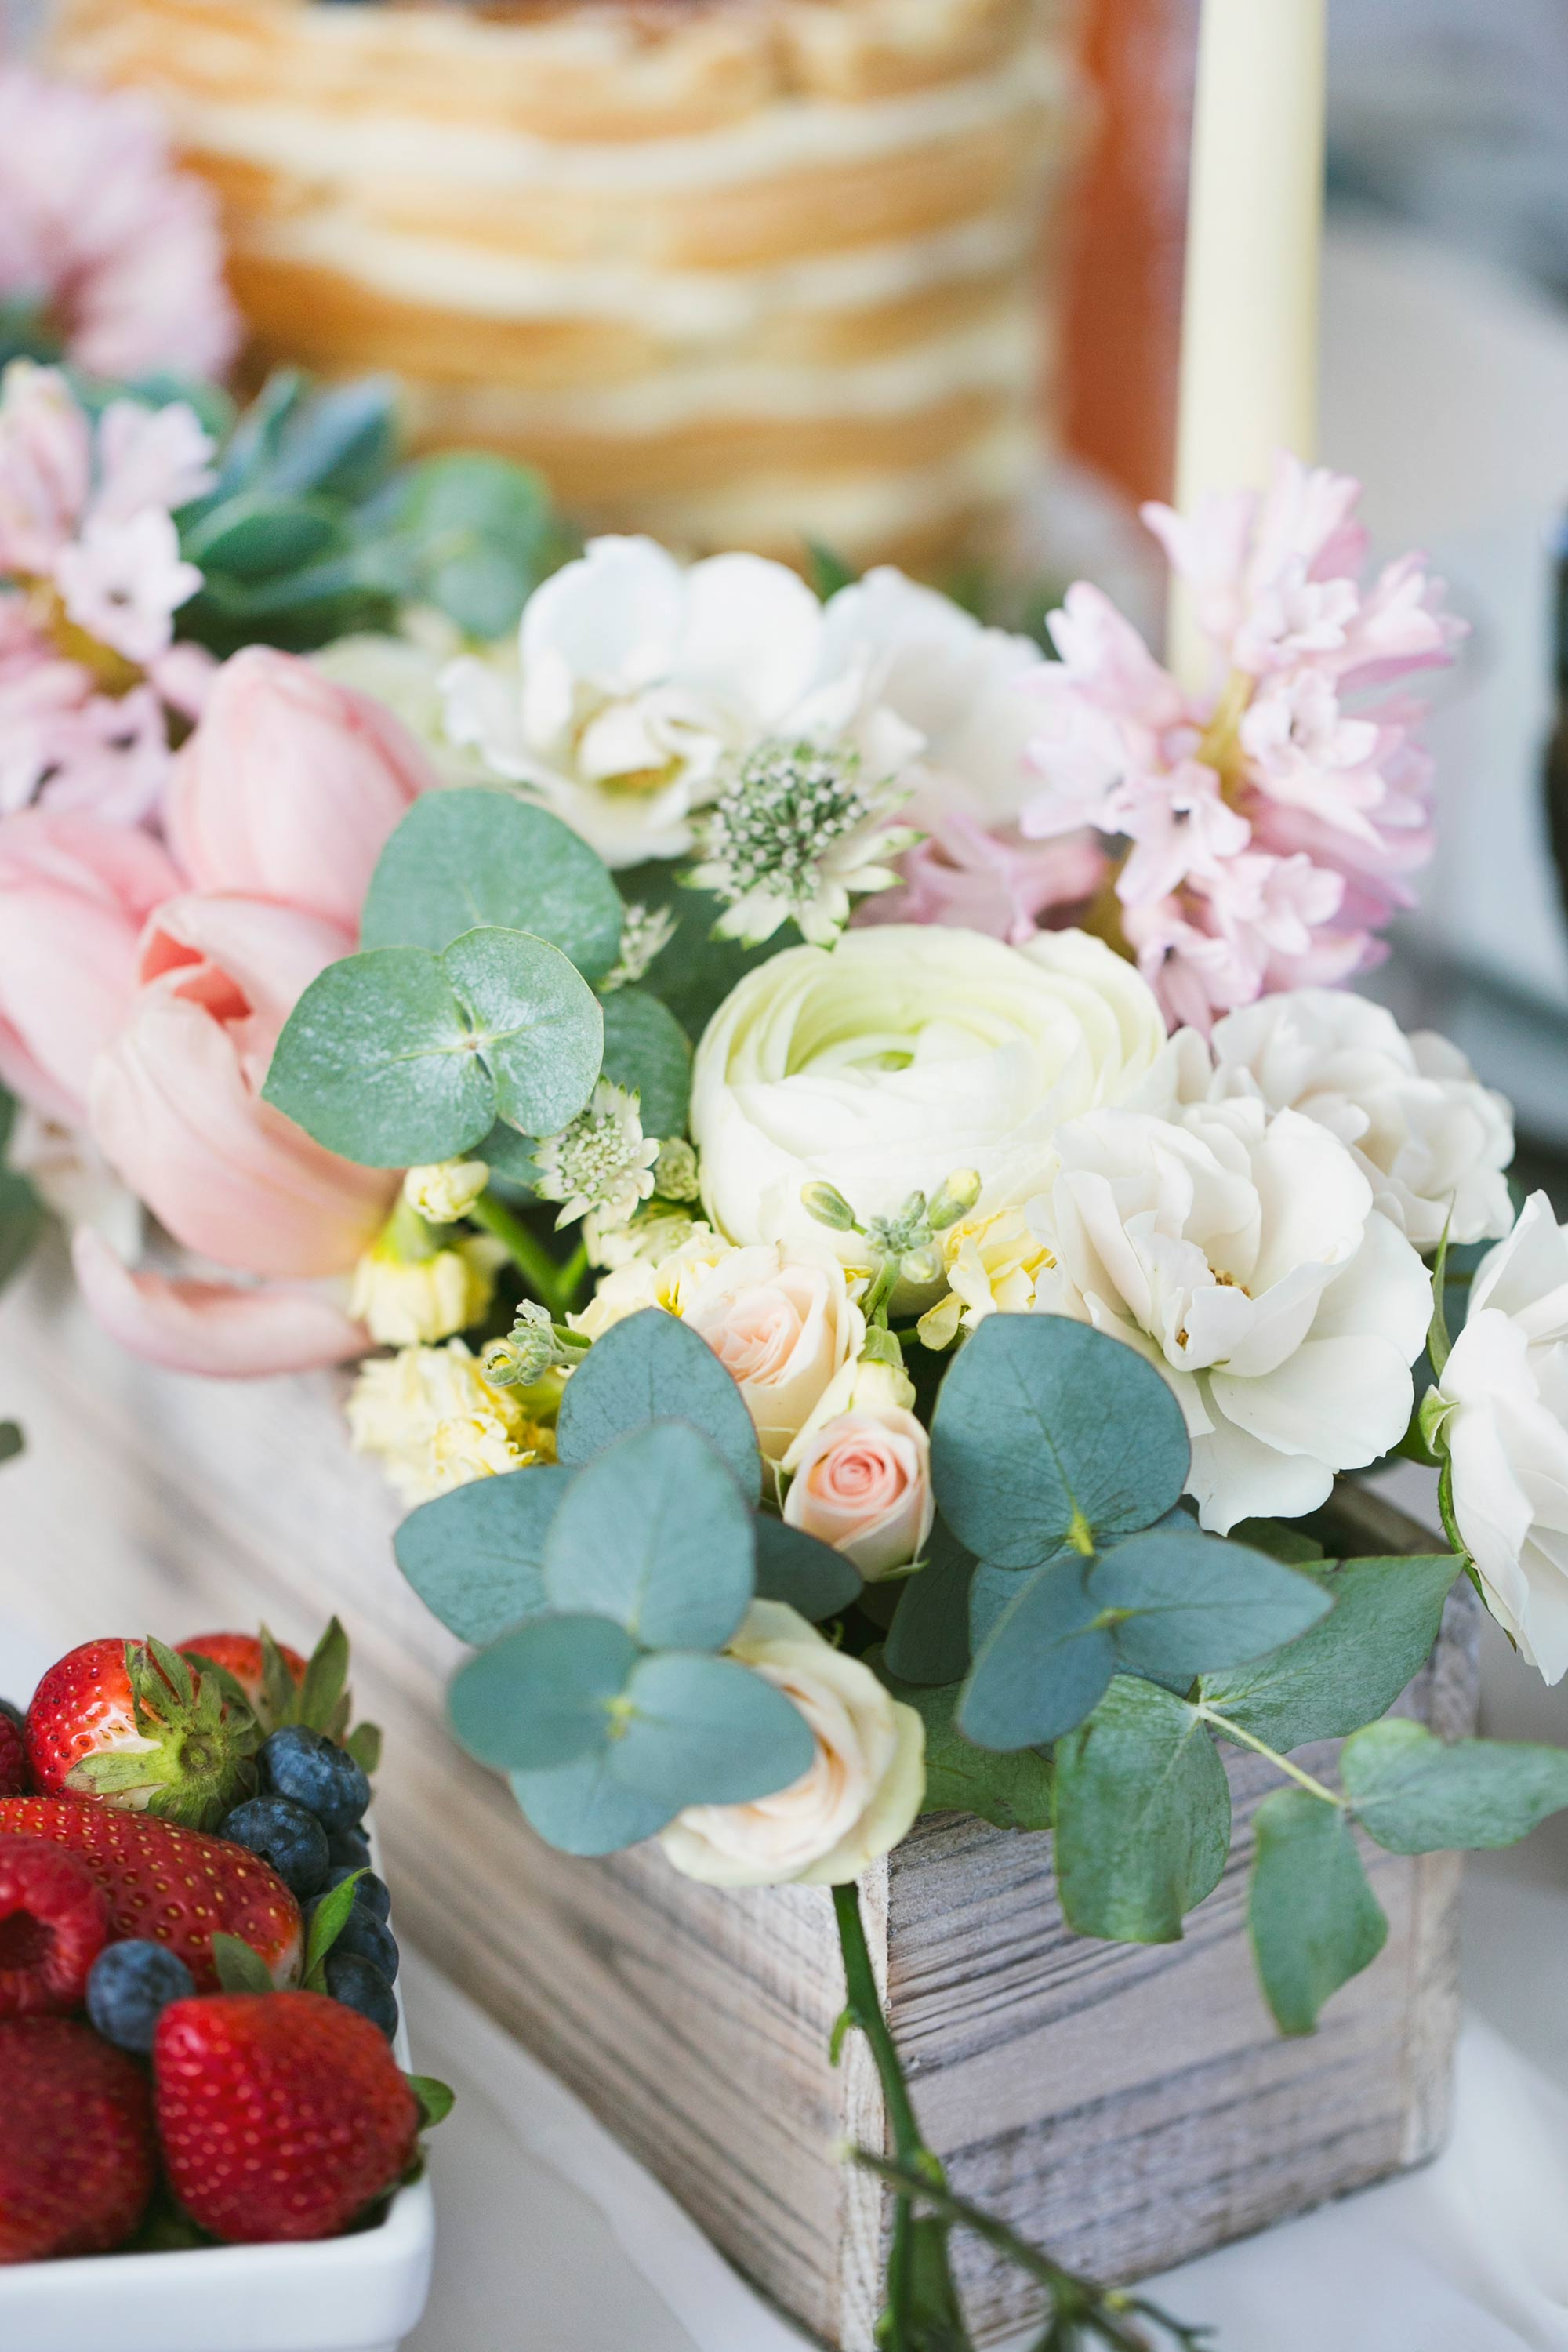 Ranunculus, Hyacinths, Tulips and Eucalyptus for Mother's Day Brunch